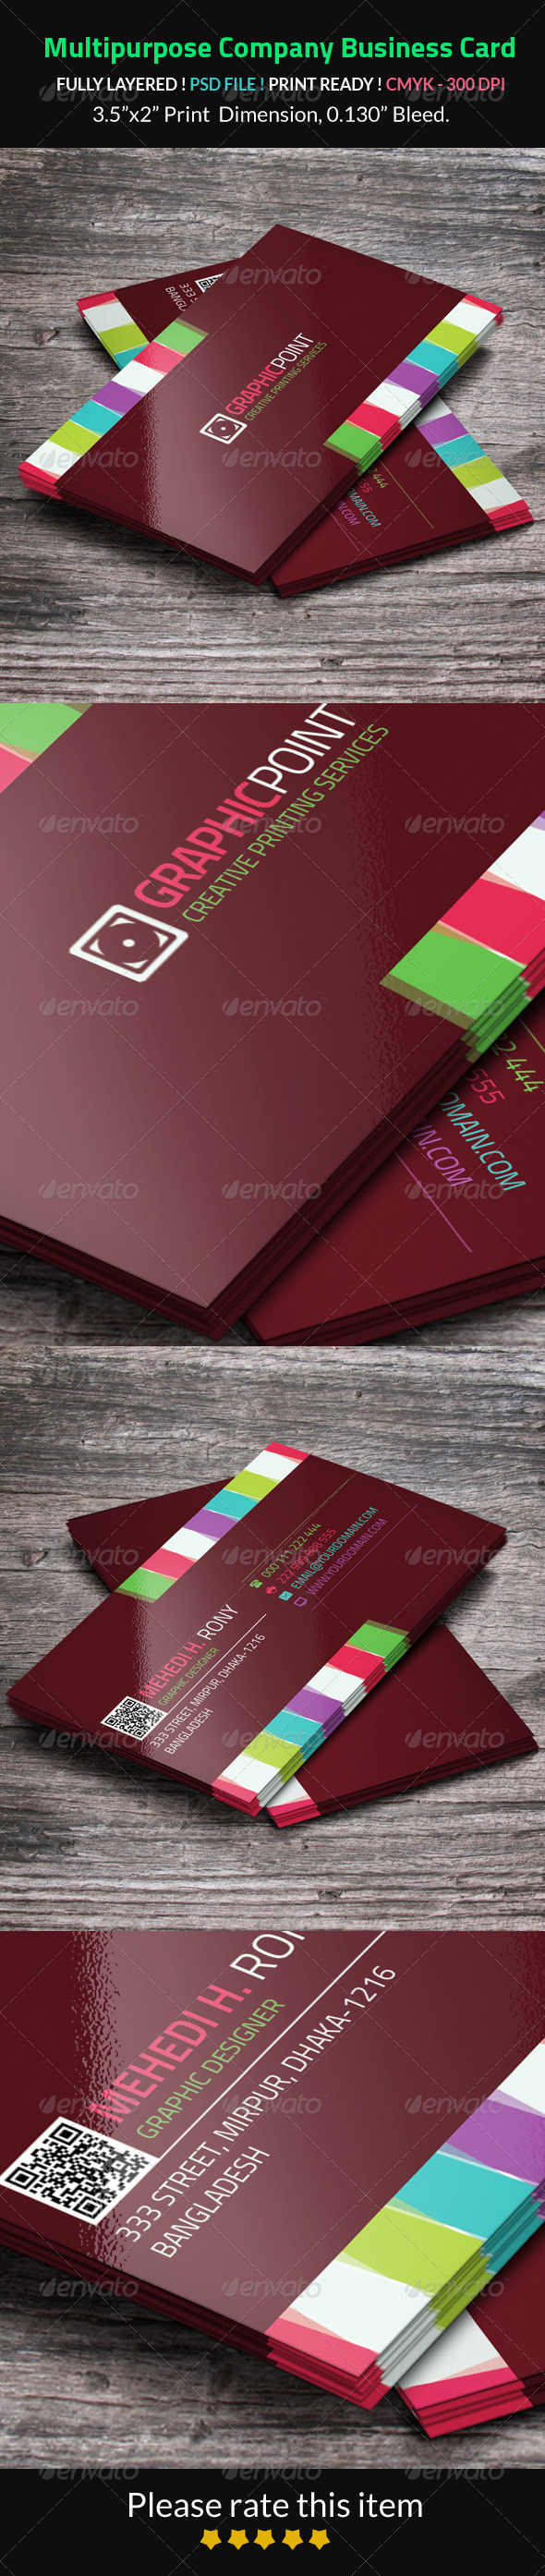 Multipurpose Company Business Card